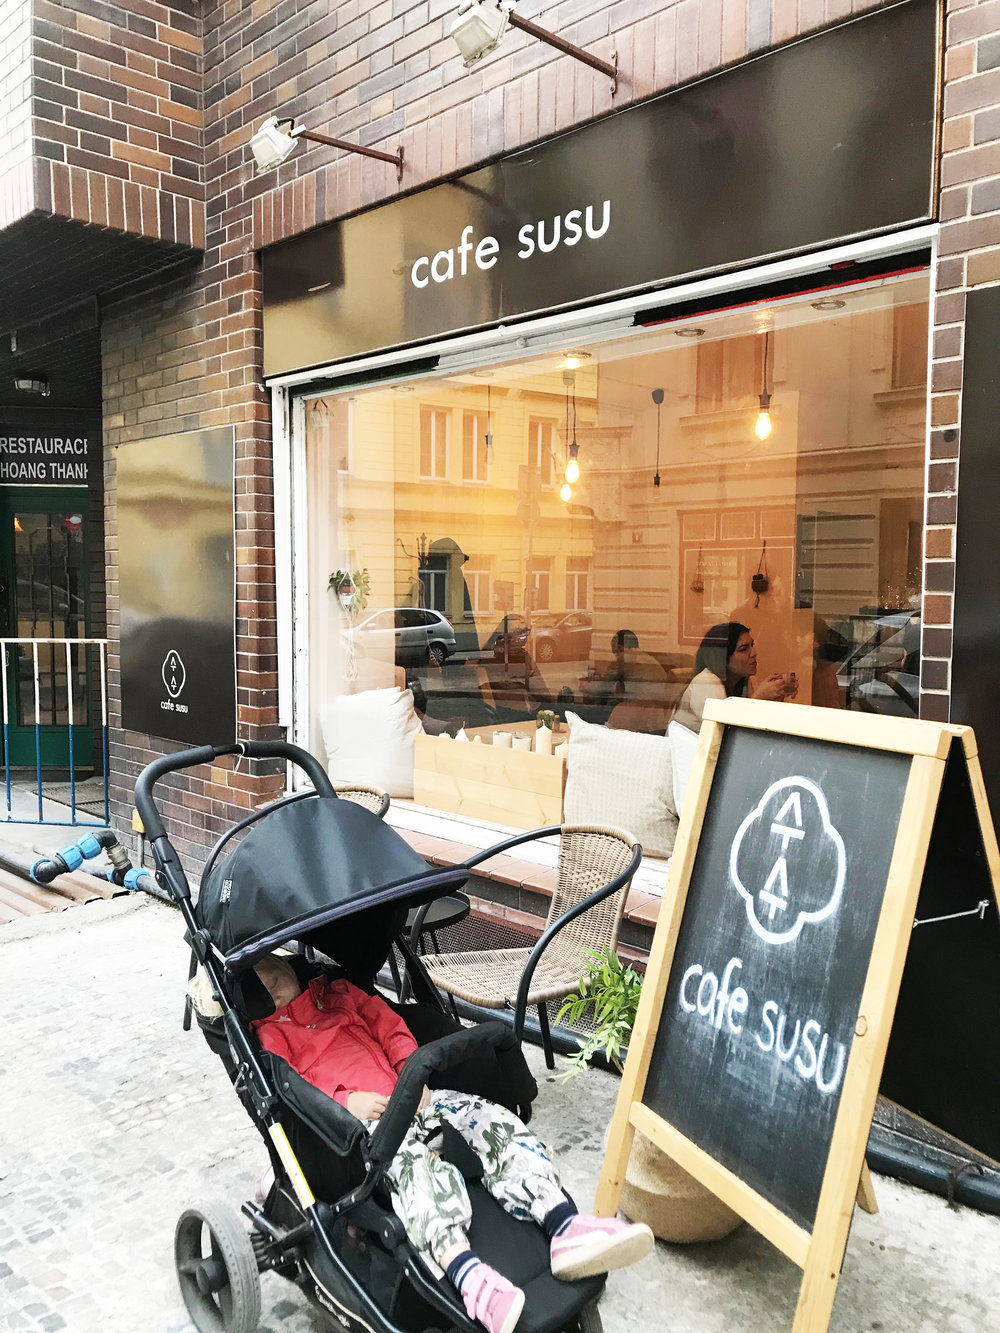 We were so happy to find a Korean cafe near our hotel! In fact, our driver told us that there were many koreans in Praha. And did you know, it is known to be very safe, so safe that people leave their kids in strollers while they go into a cafe!